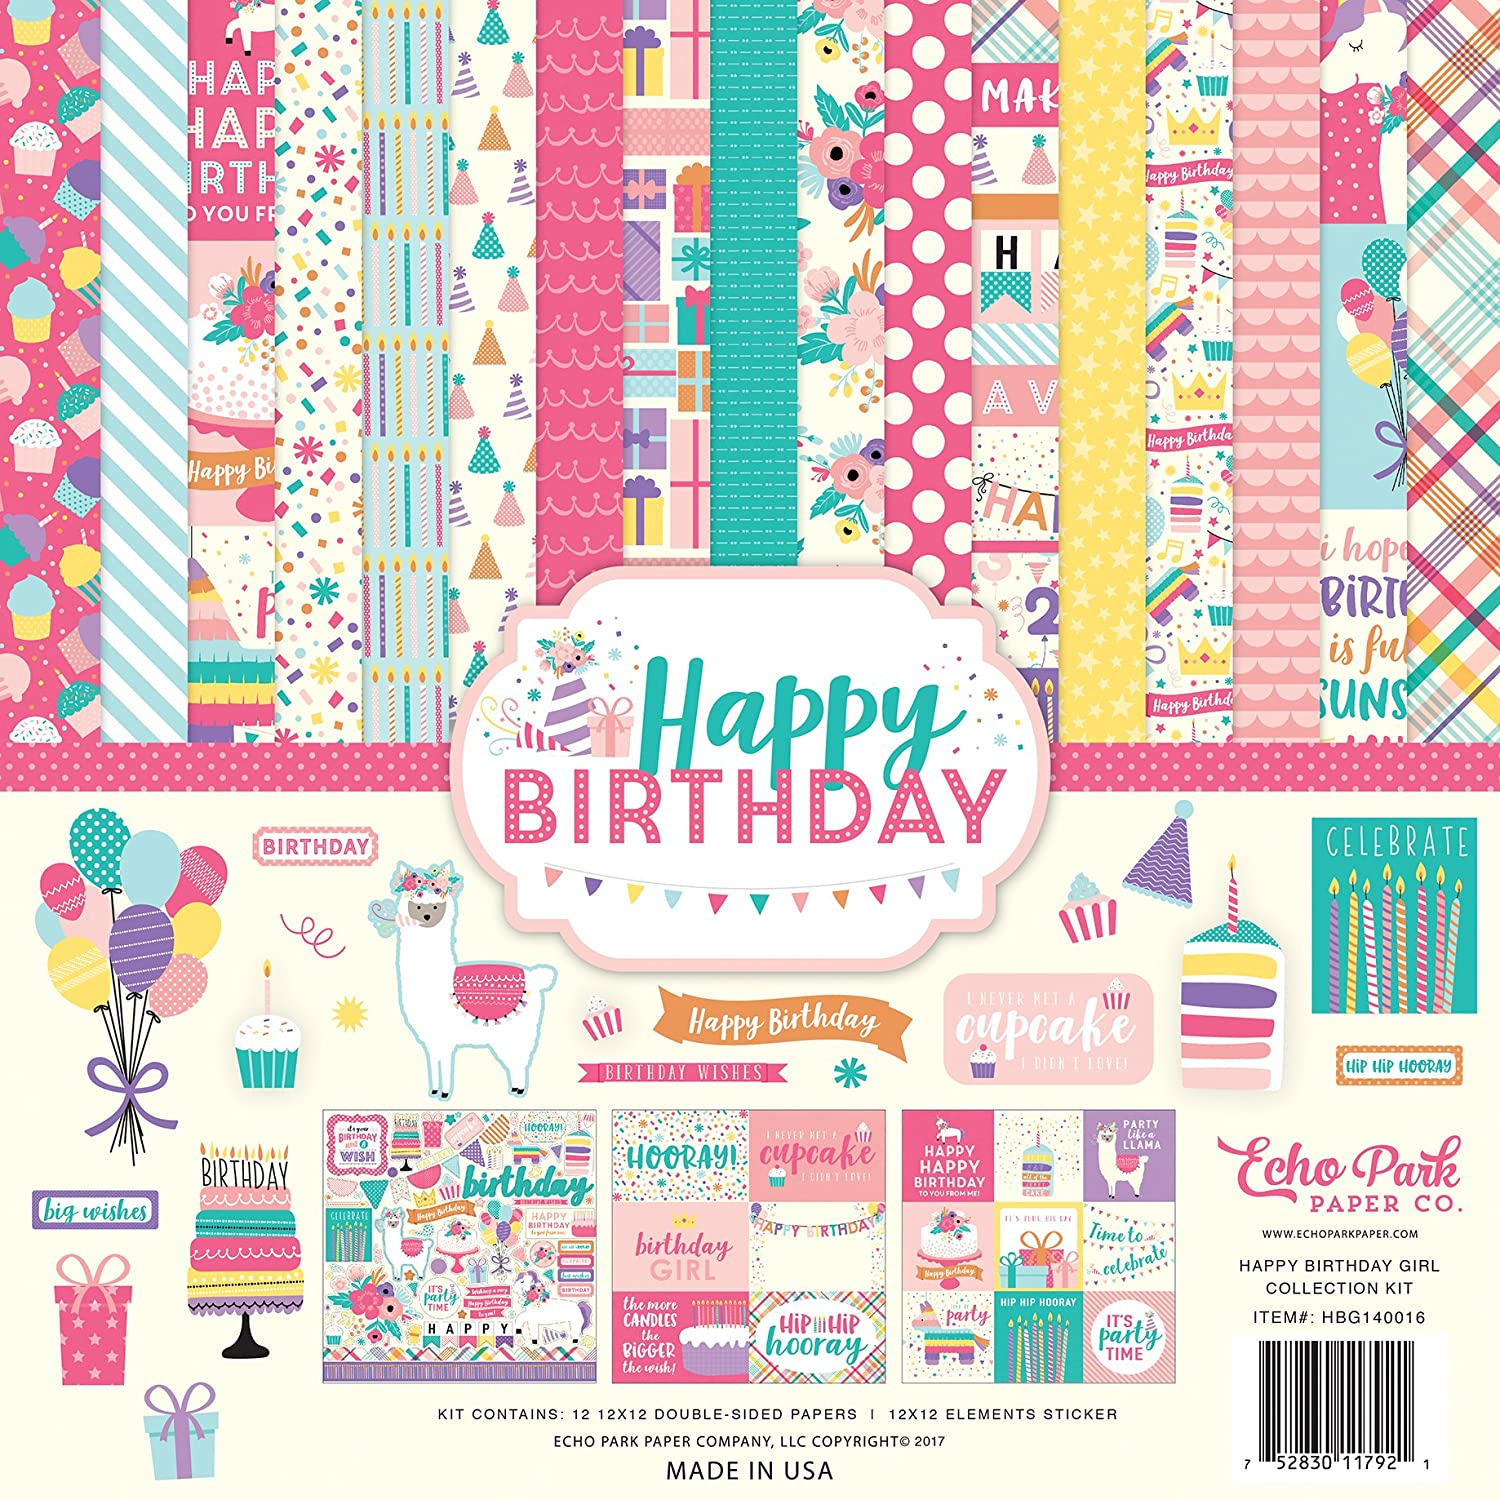 Echo Park Paper Company Happy Birthday Girl Collection Kit HBG140016